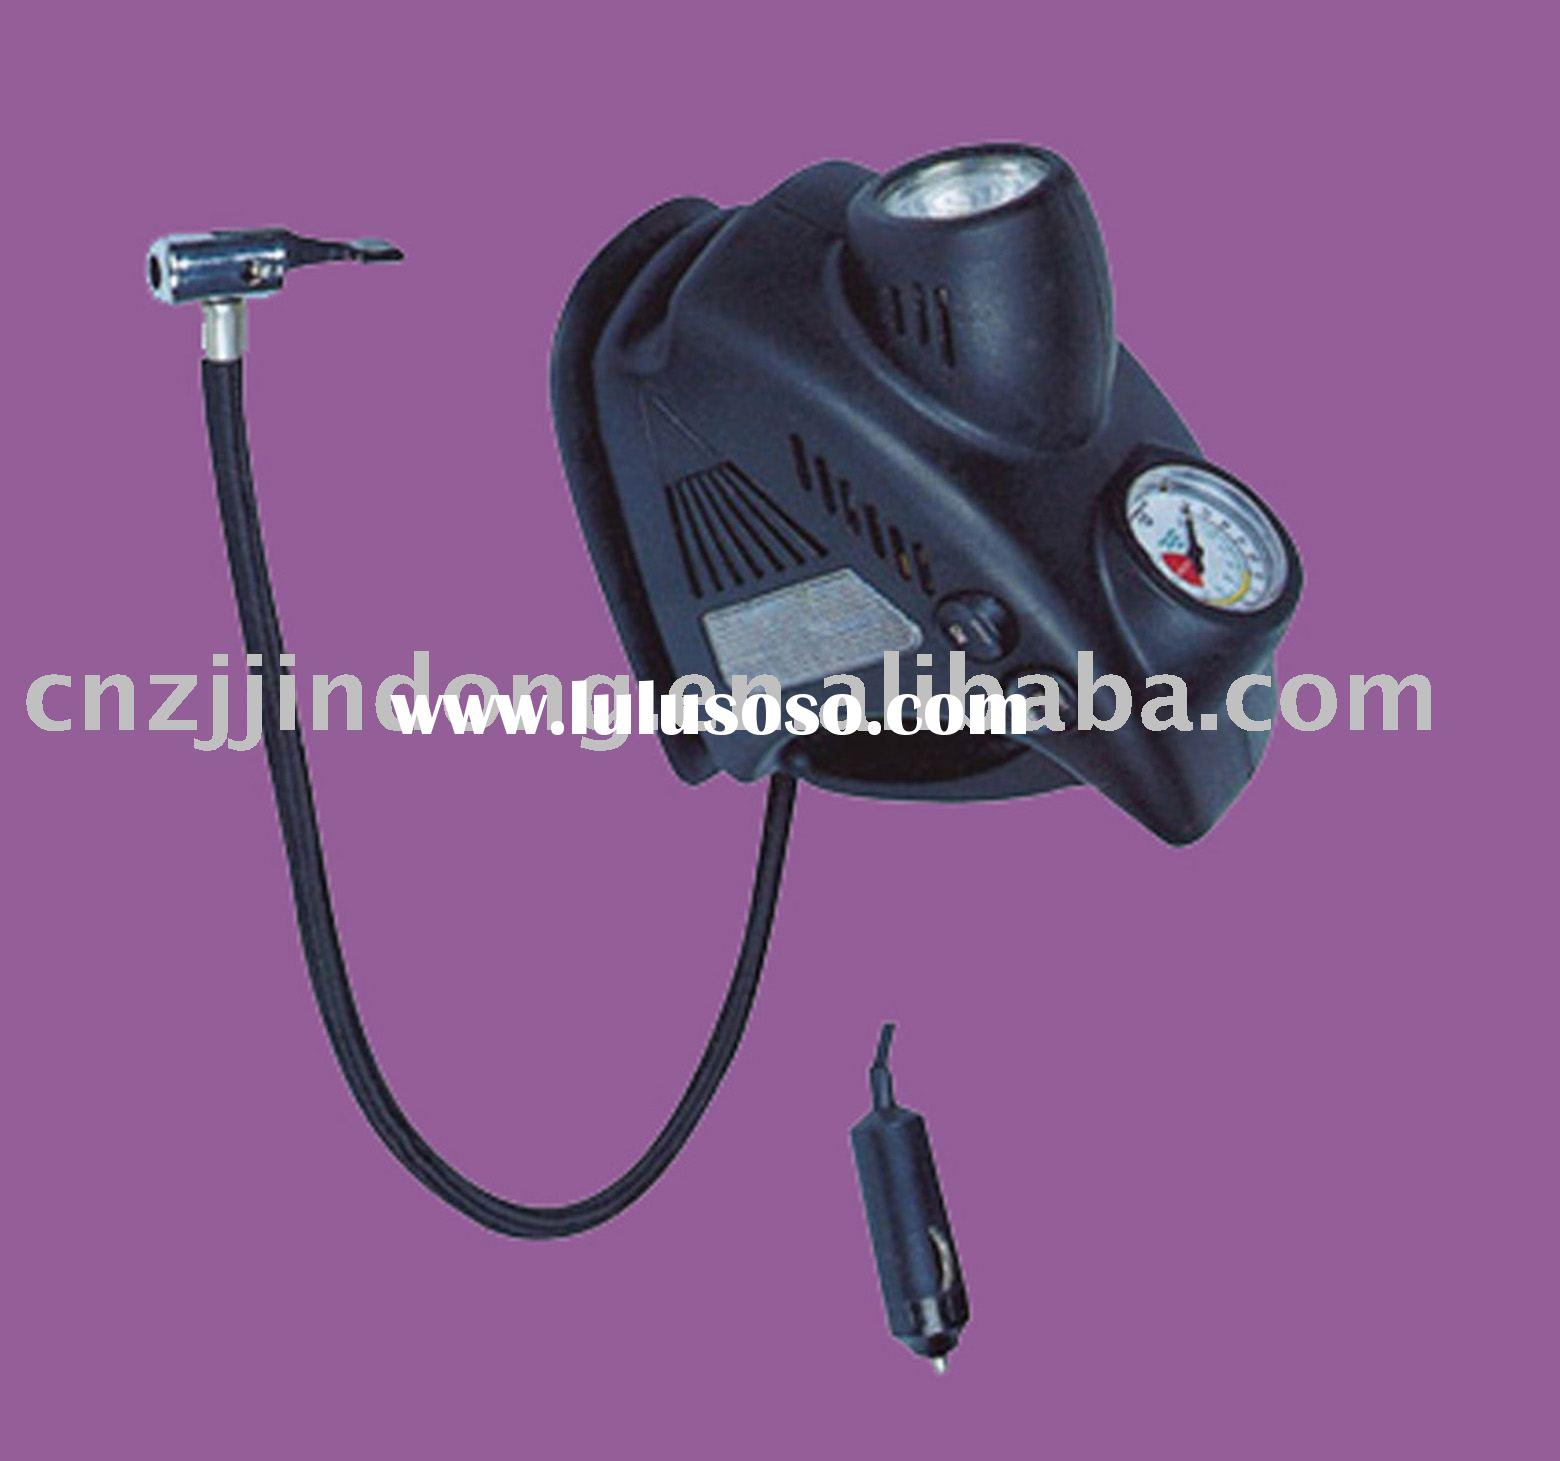 mini air pump,ac/dc air pump,mini air compressor,air compressor,car air compressor, auto air compres